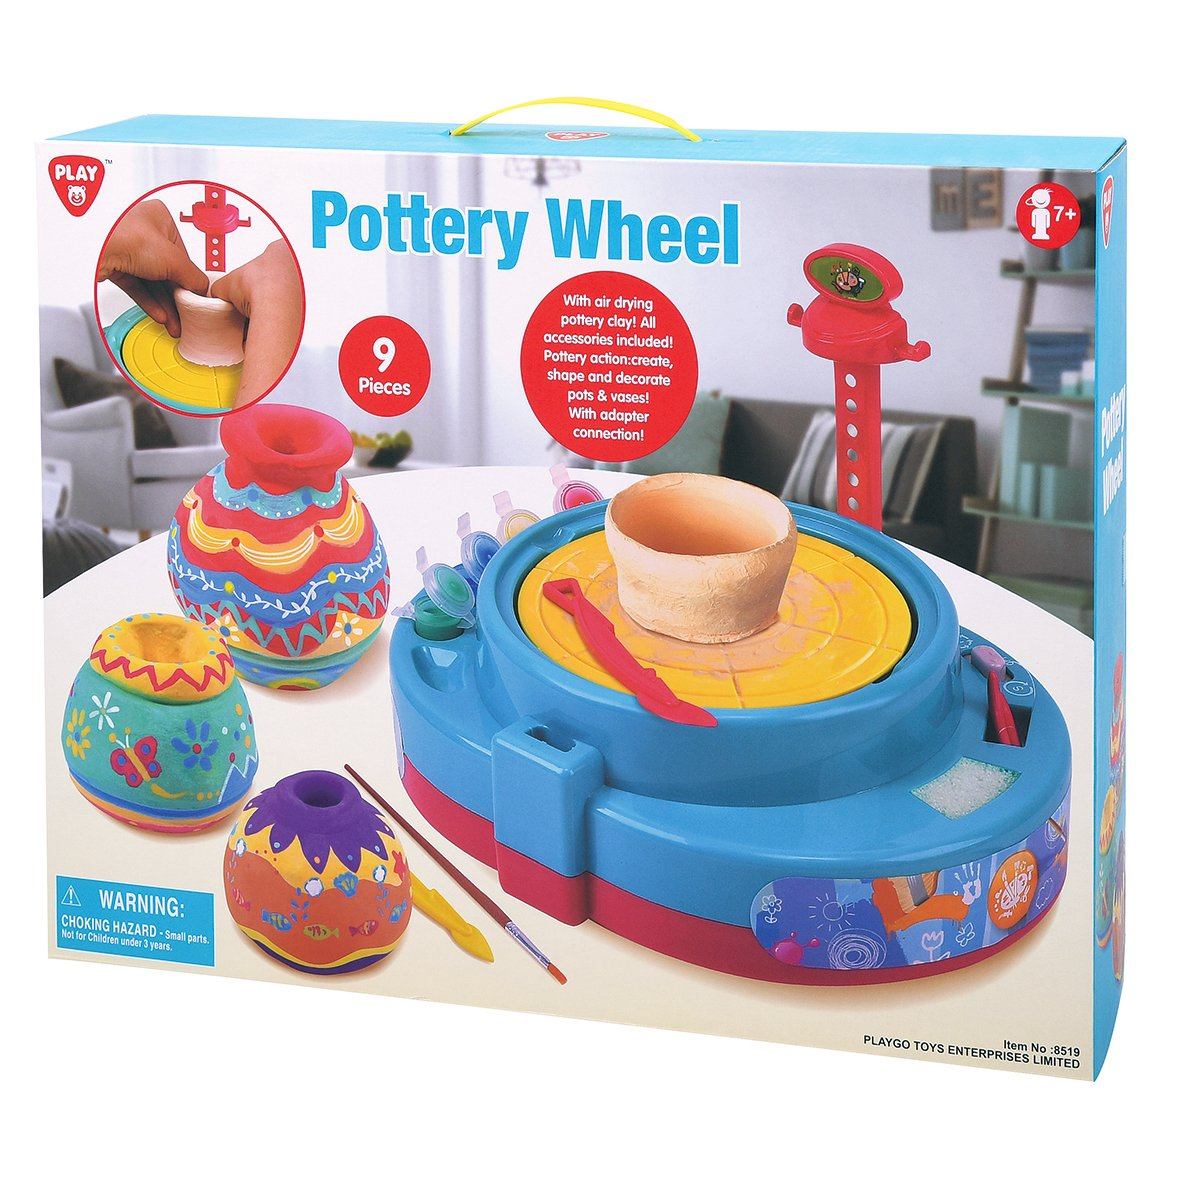 PLAYGO POTTERY WHEEL BATTERY OPERATED 9PCS